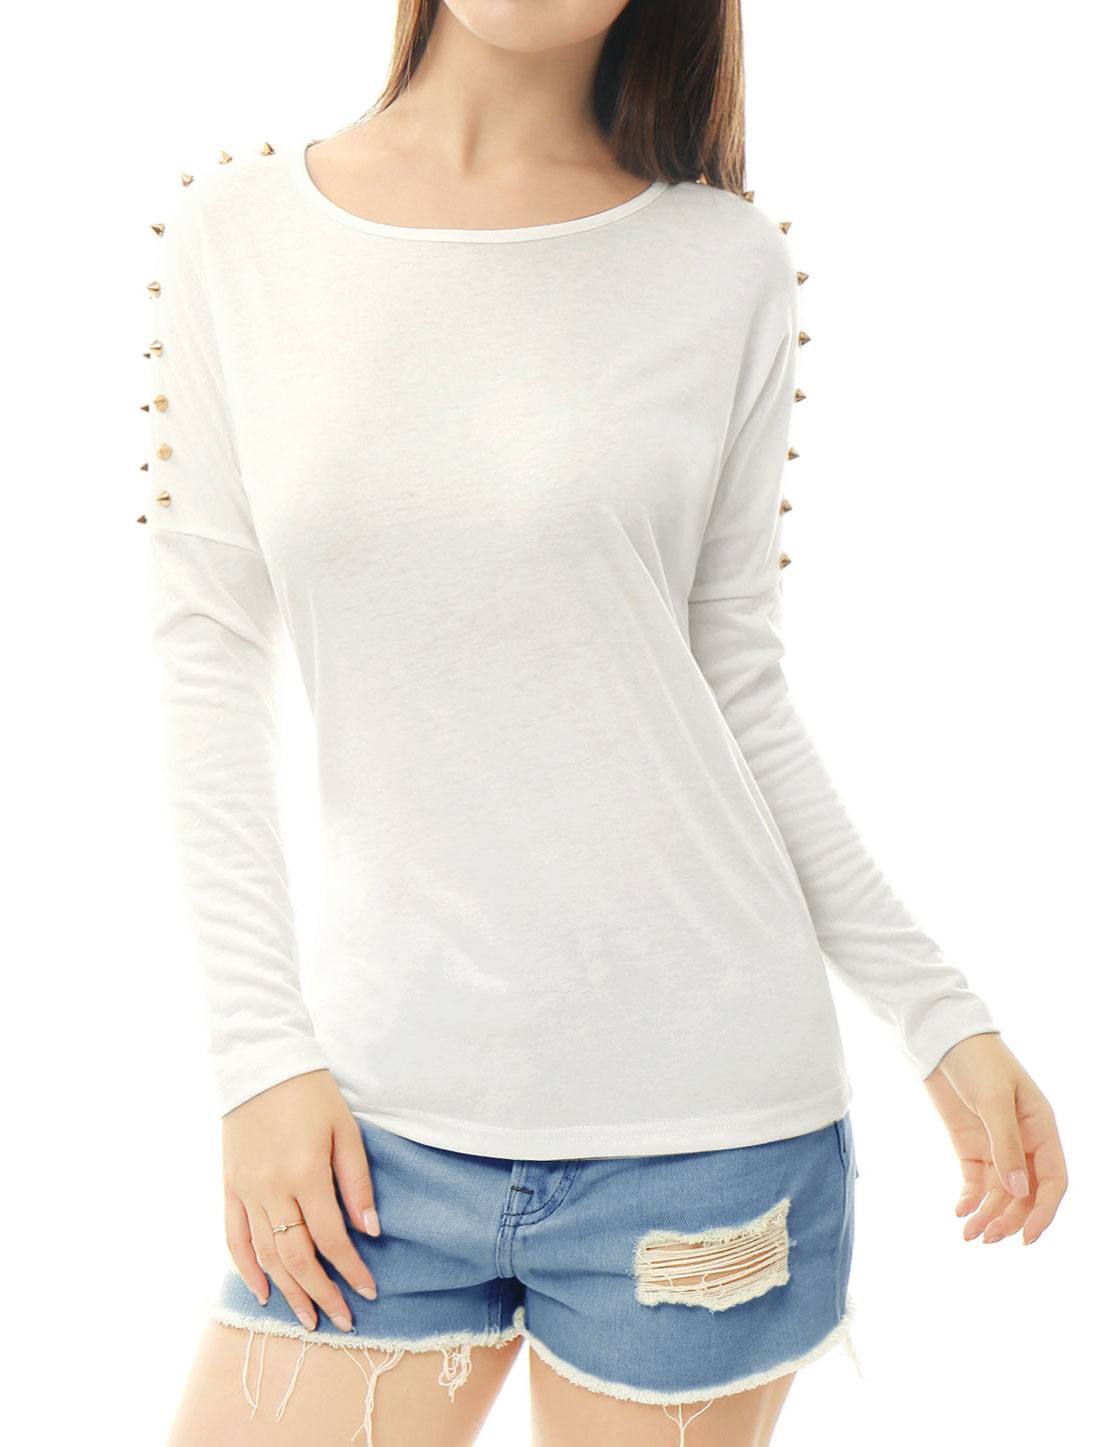 Women Round Neck Studs Embellished Dolman Sleeves Top White M